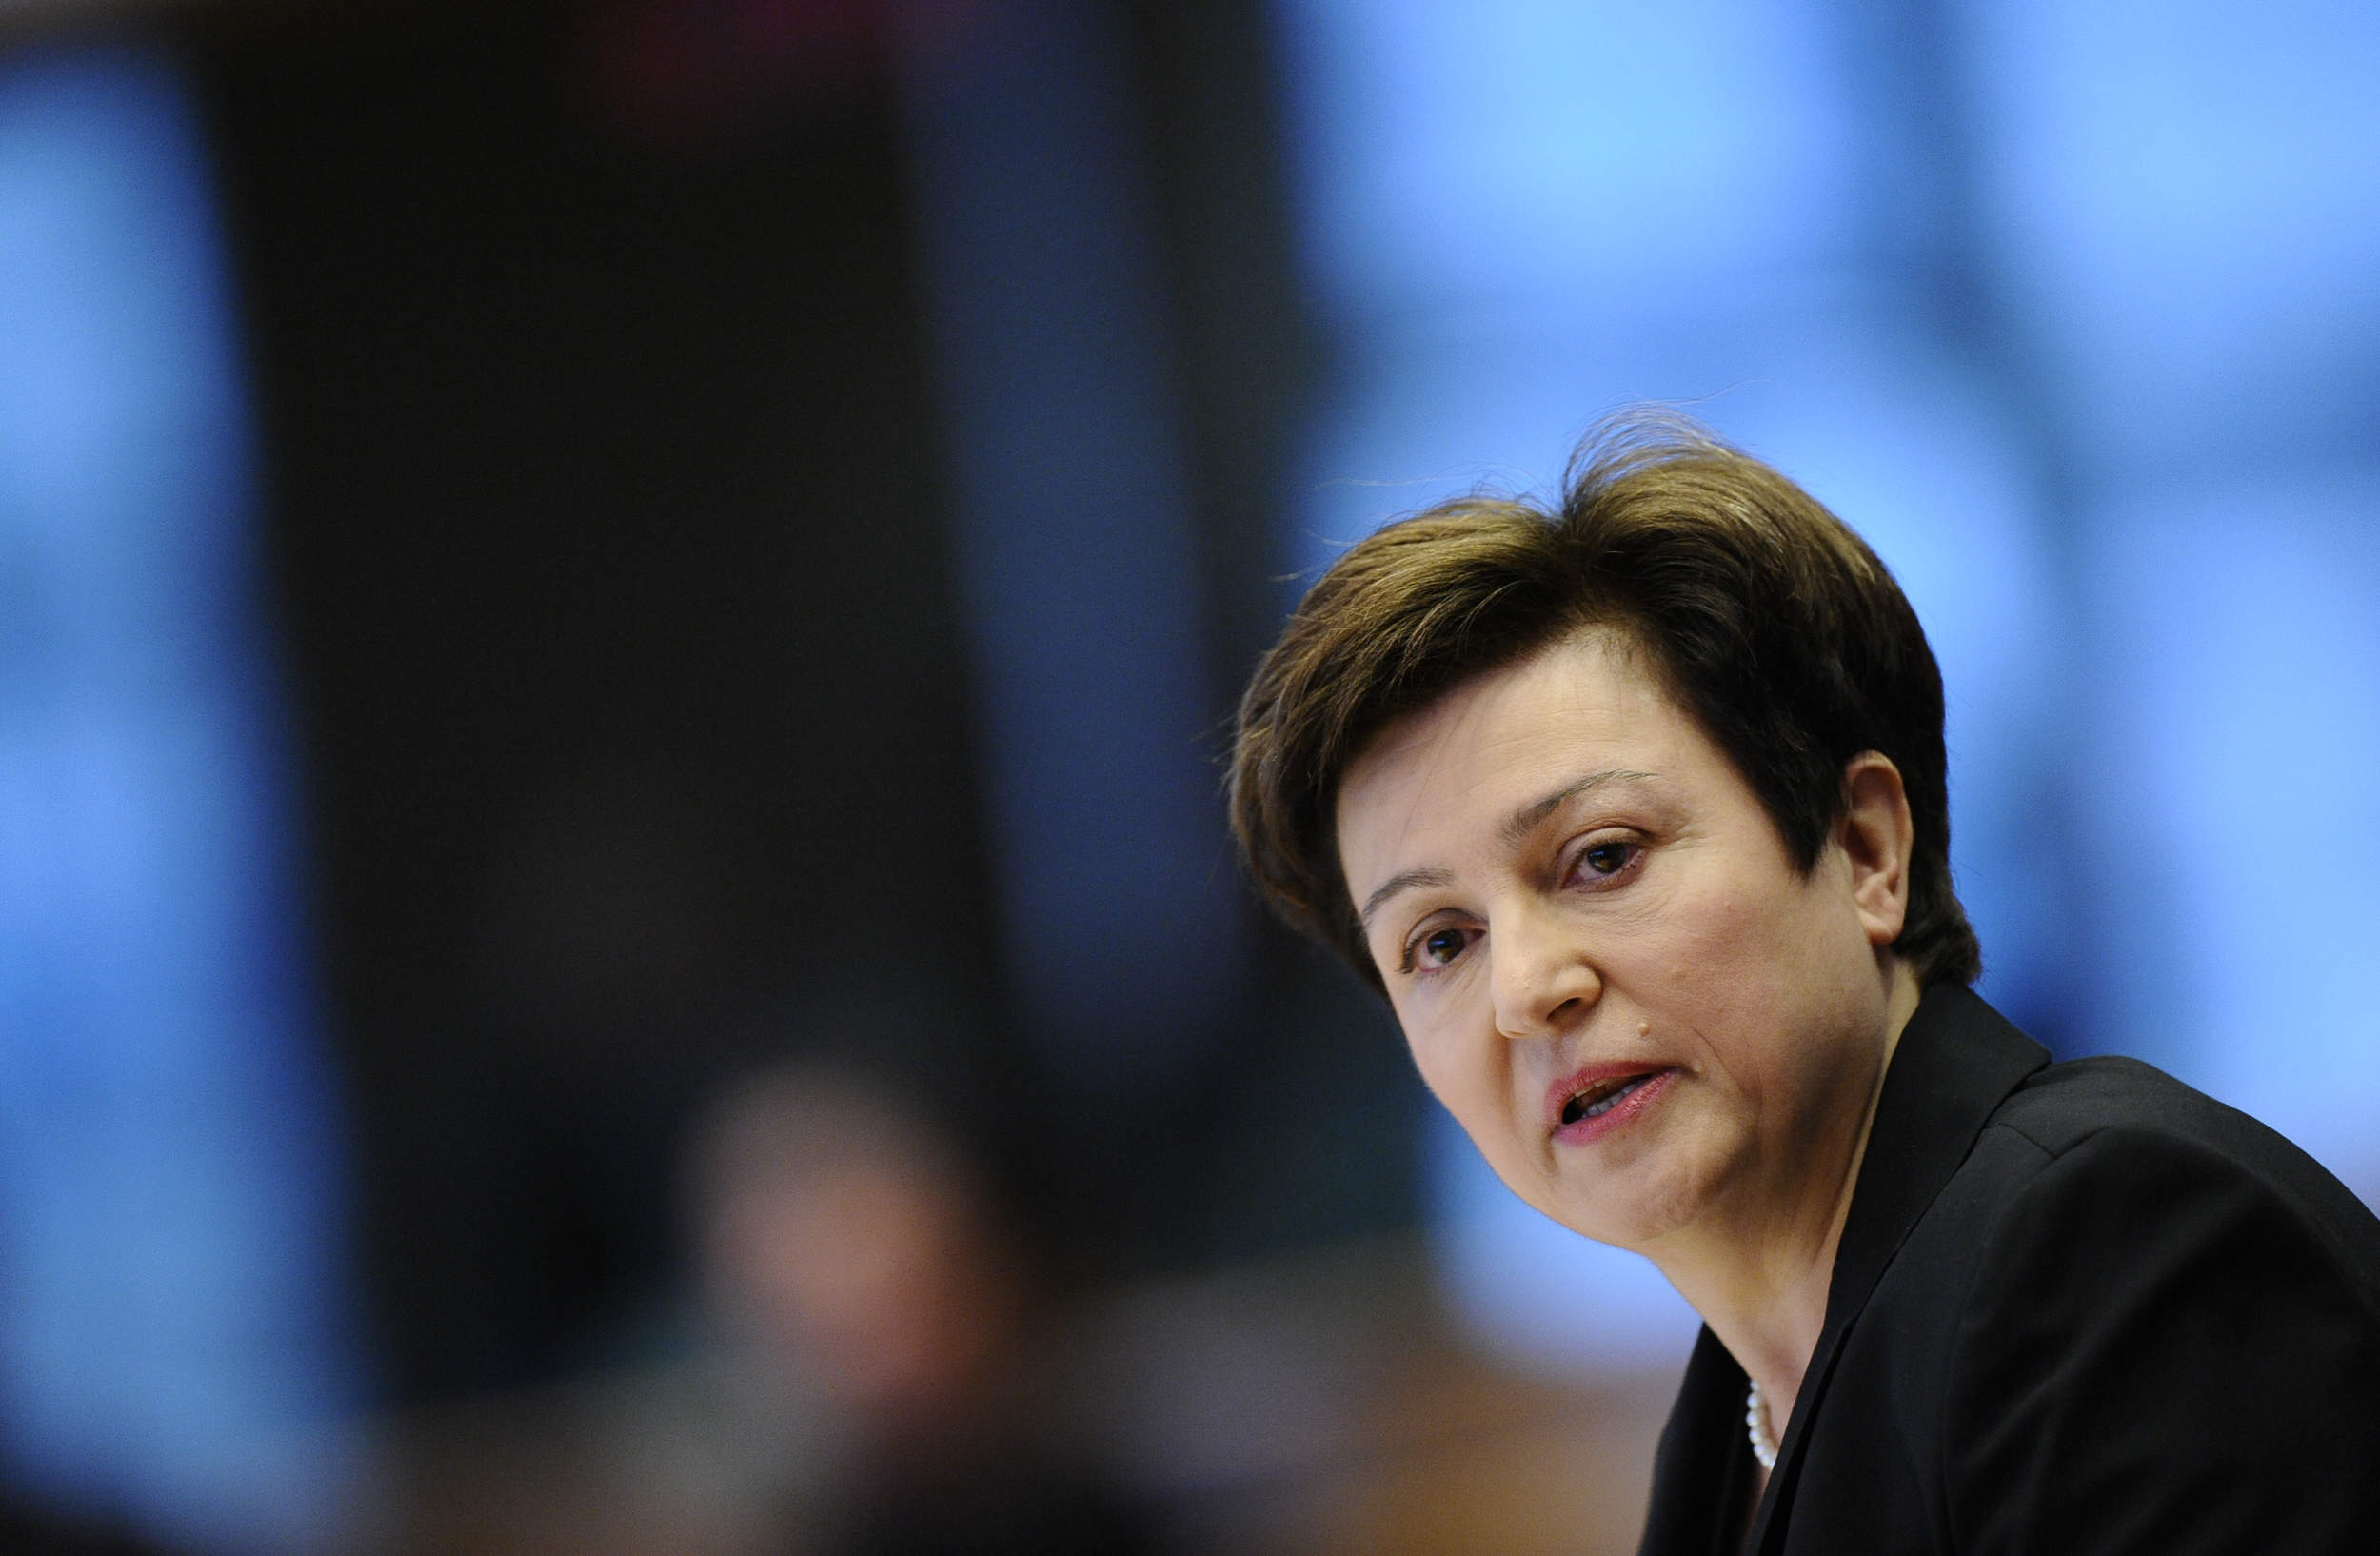 Why is Germany throwing a wild card into the UN leadership race?